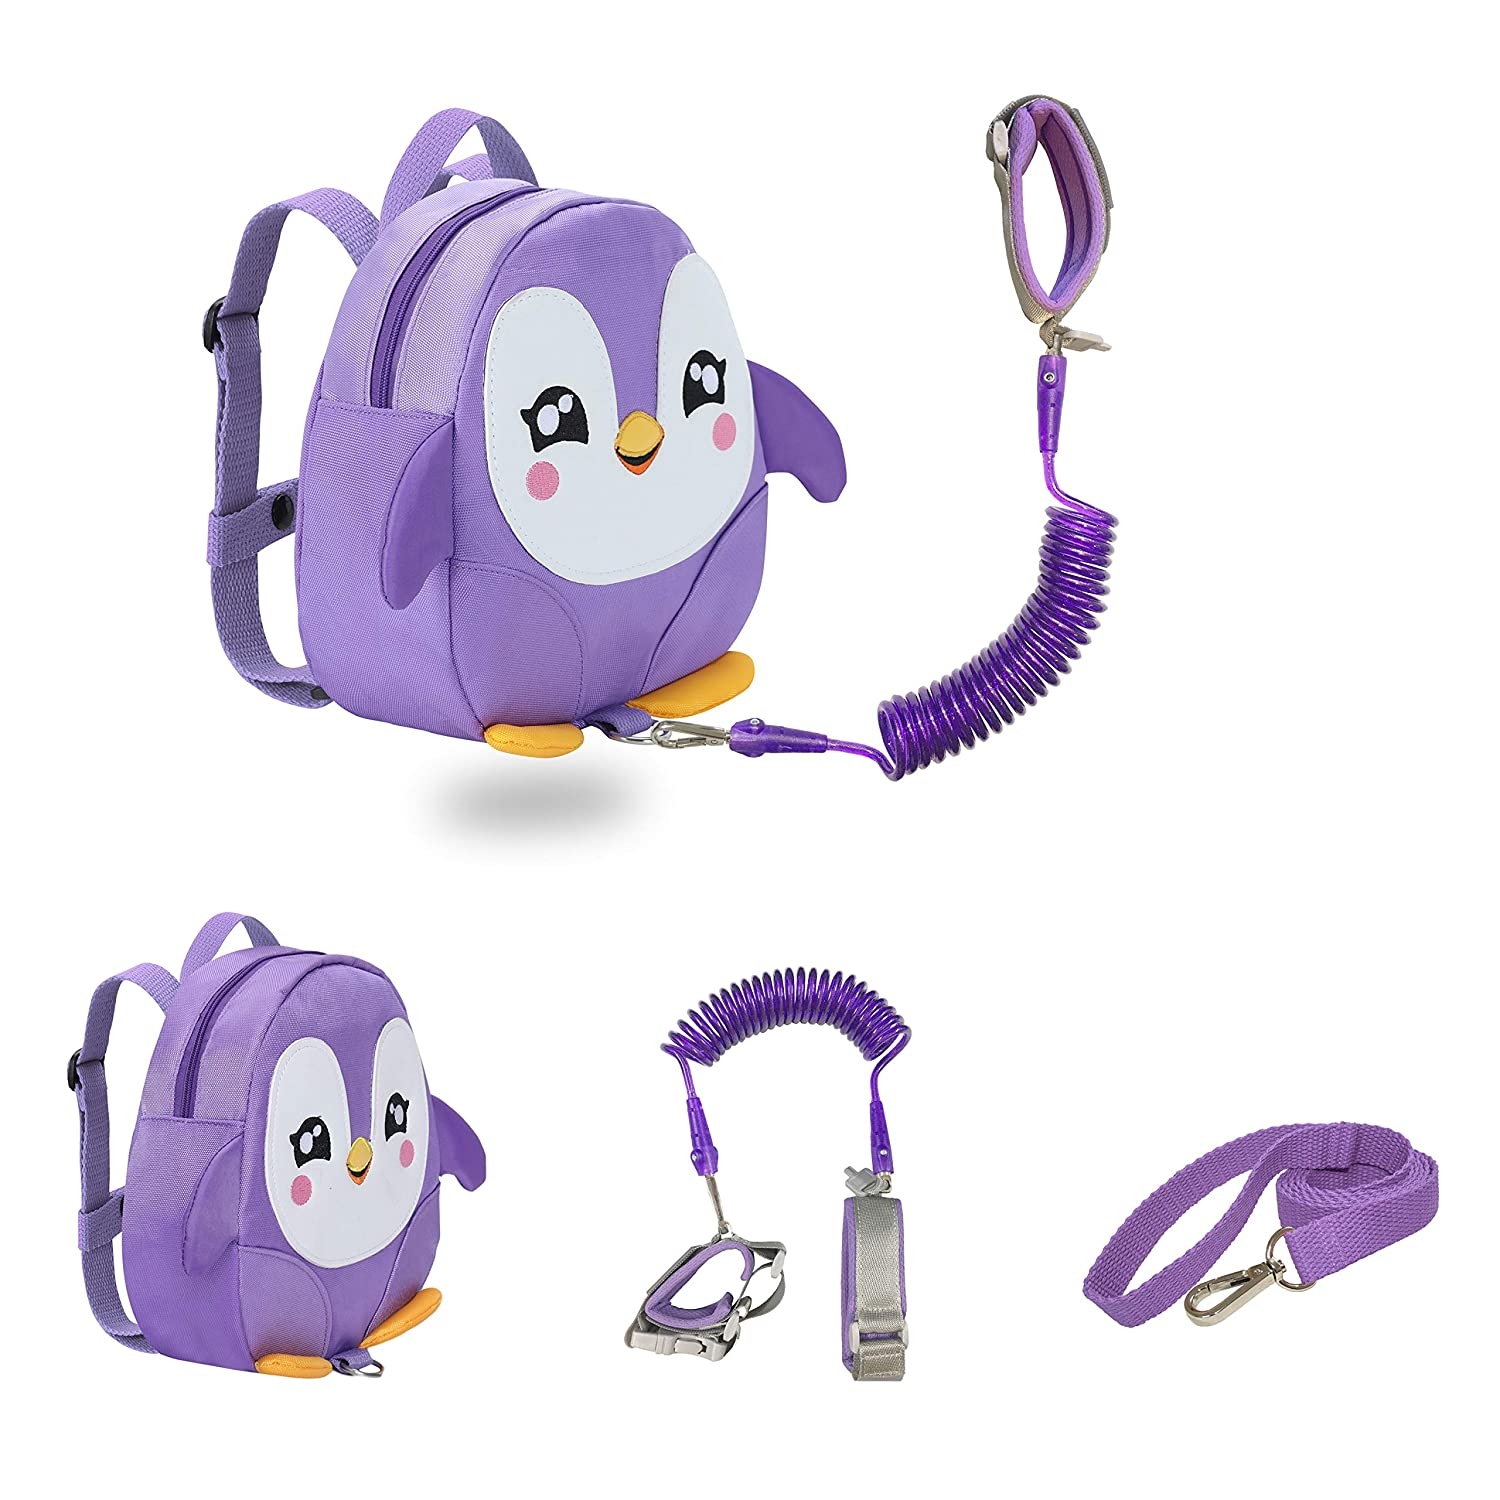 JIANBAO Penguin Toddler Backpacks with Leashes Anti Lost Wrist Link for 1.5 to 3 Years Kids Girls Boys Safety (Penguin, Purple)